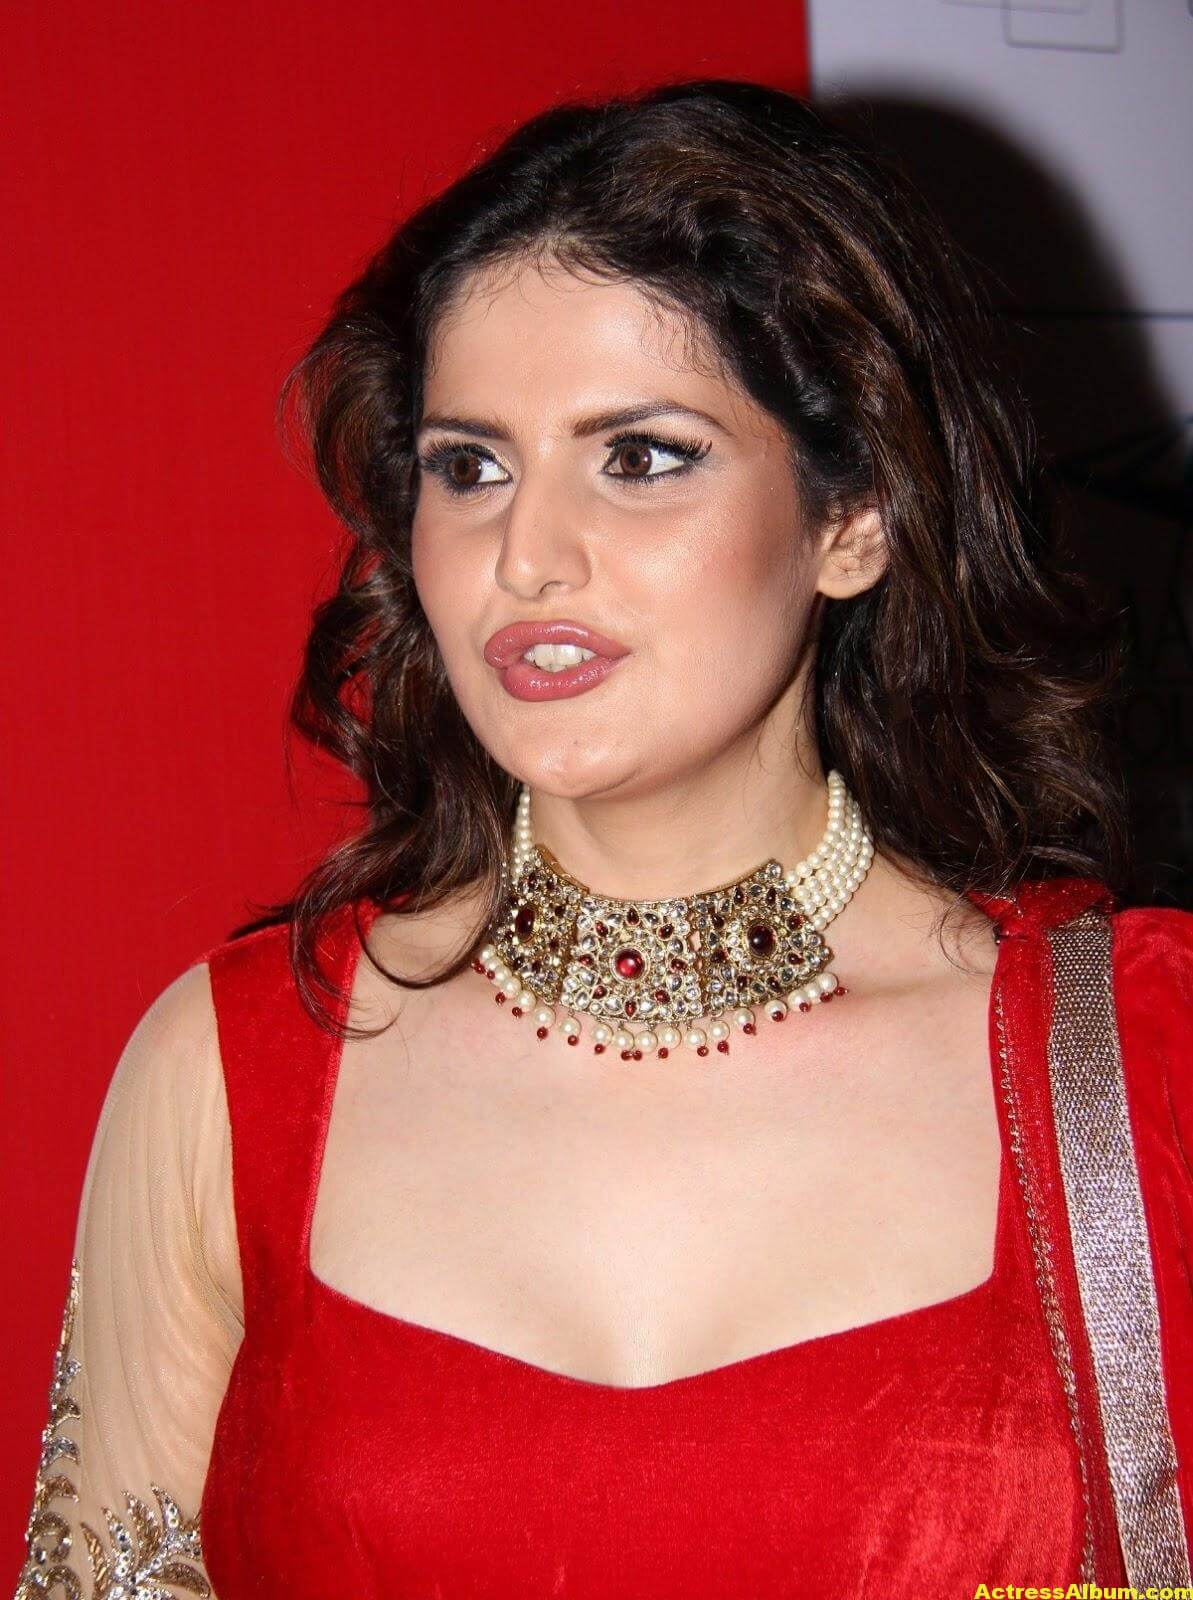 Zarine Khan Hot Photoshoot In Red Dress 1